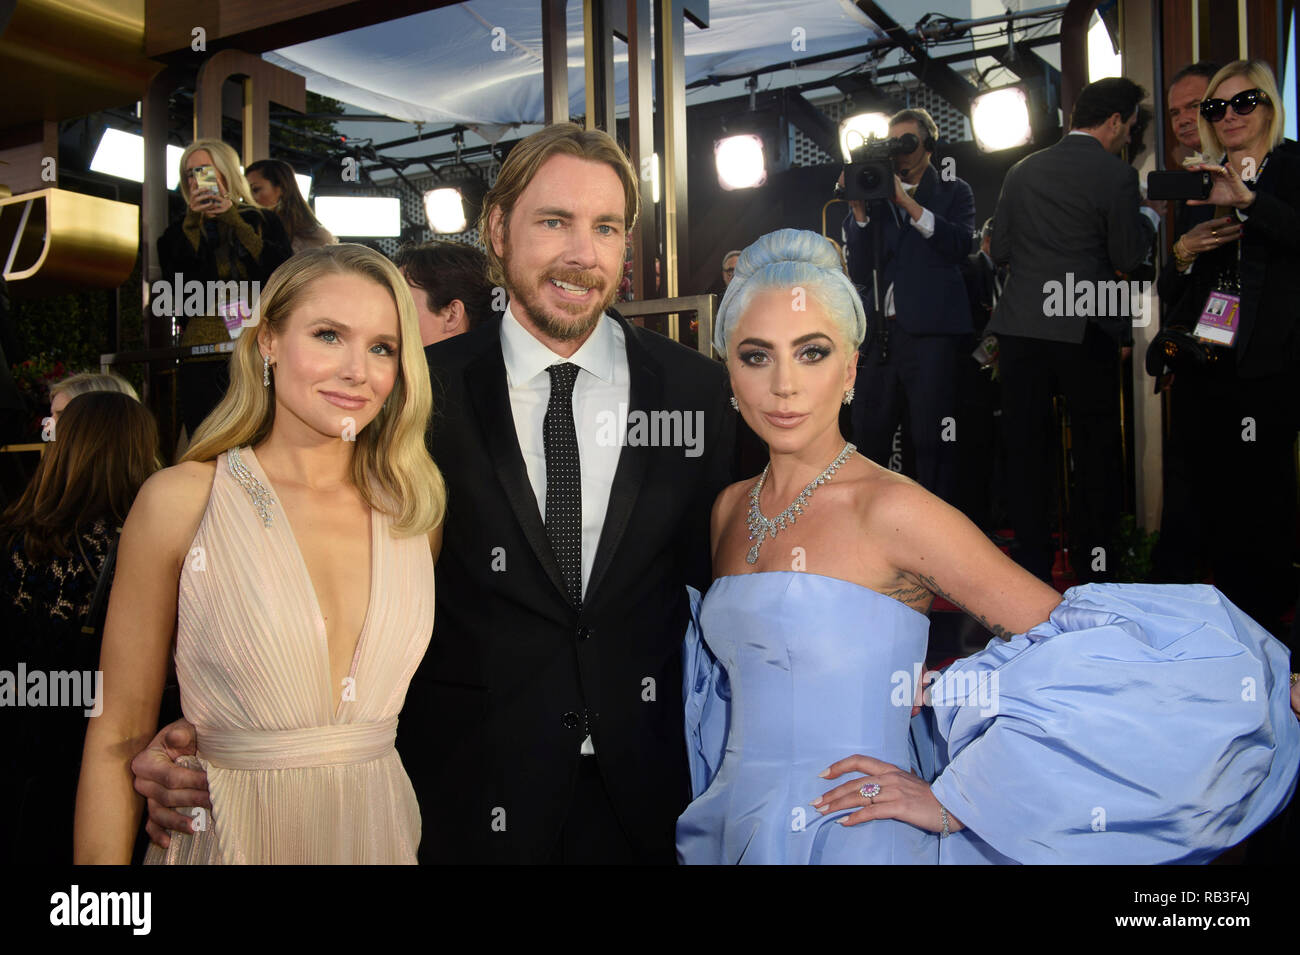 Golden Globe nominee, Kristen Bell, Dax Shepherd and Golden Globe nominee, Lady Gag arrive at the 76th Annual Golden Globe Awards at the Beverly Hilton in Beverly Hills, CA on Sunday, January 6, 2019. - Stock Image